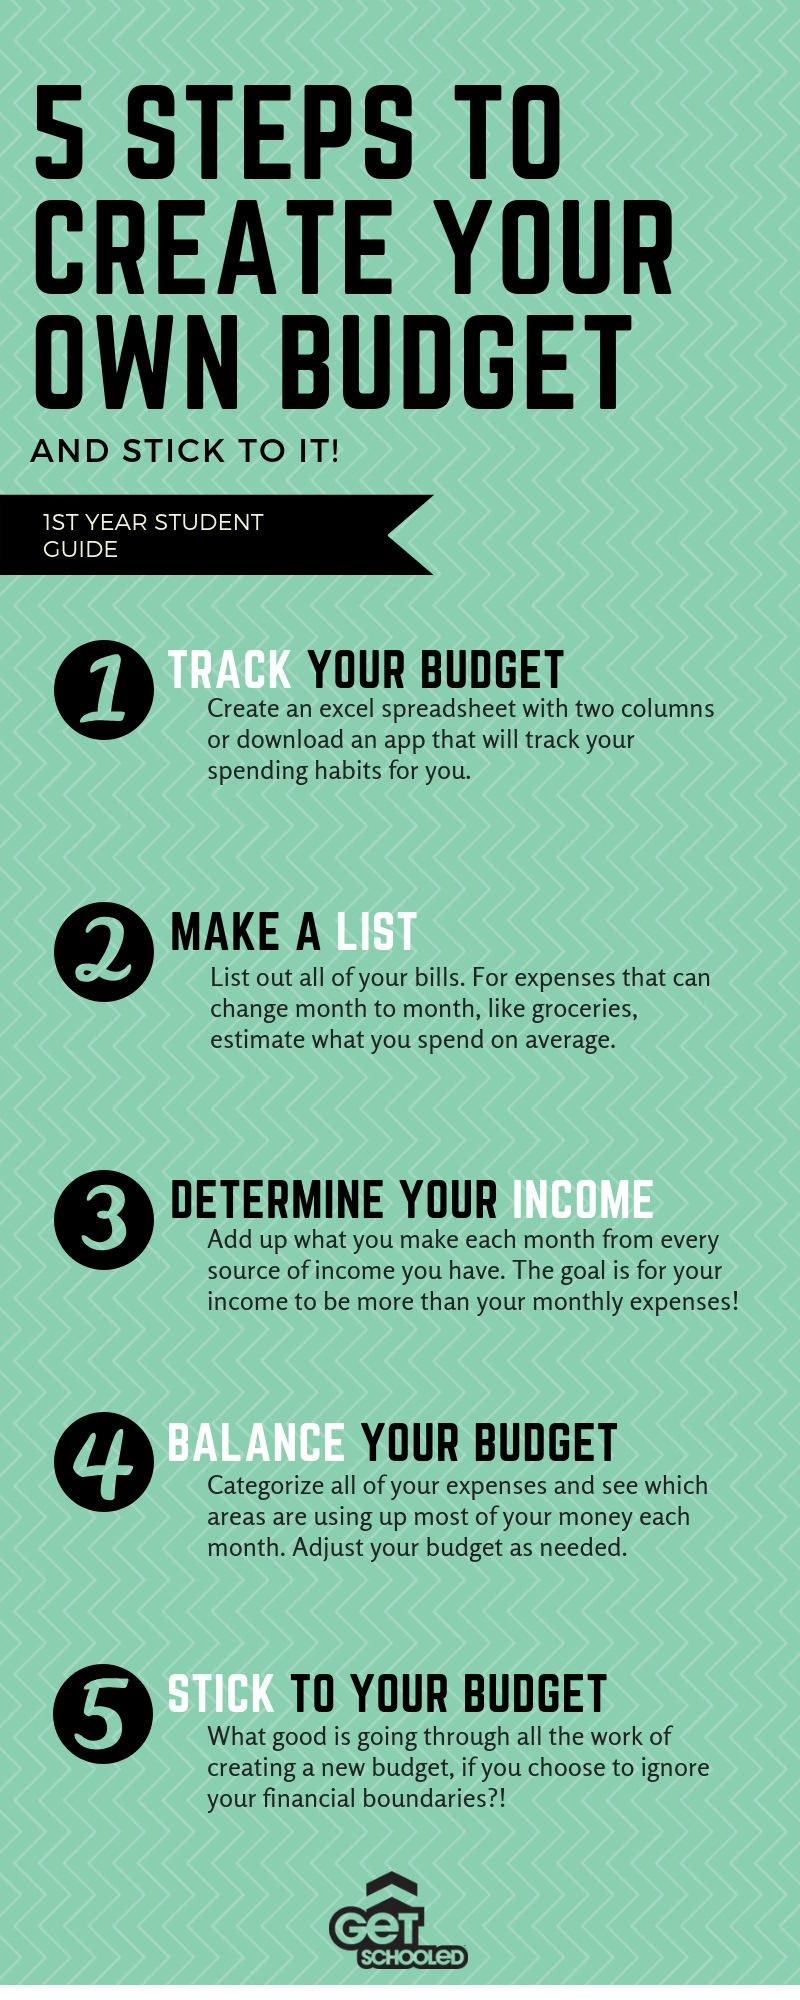 5 steps to create your own budget informational flyer